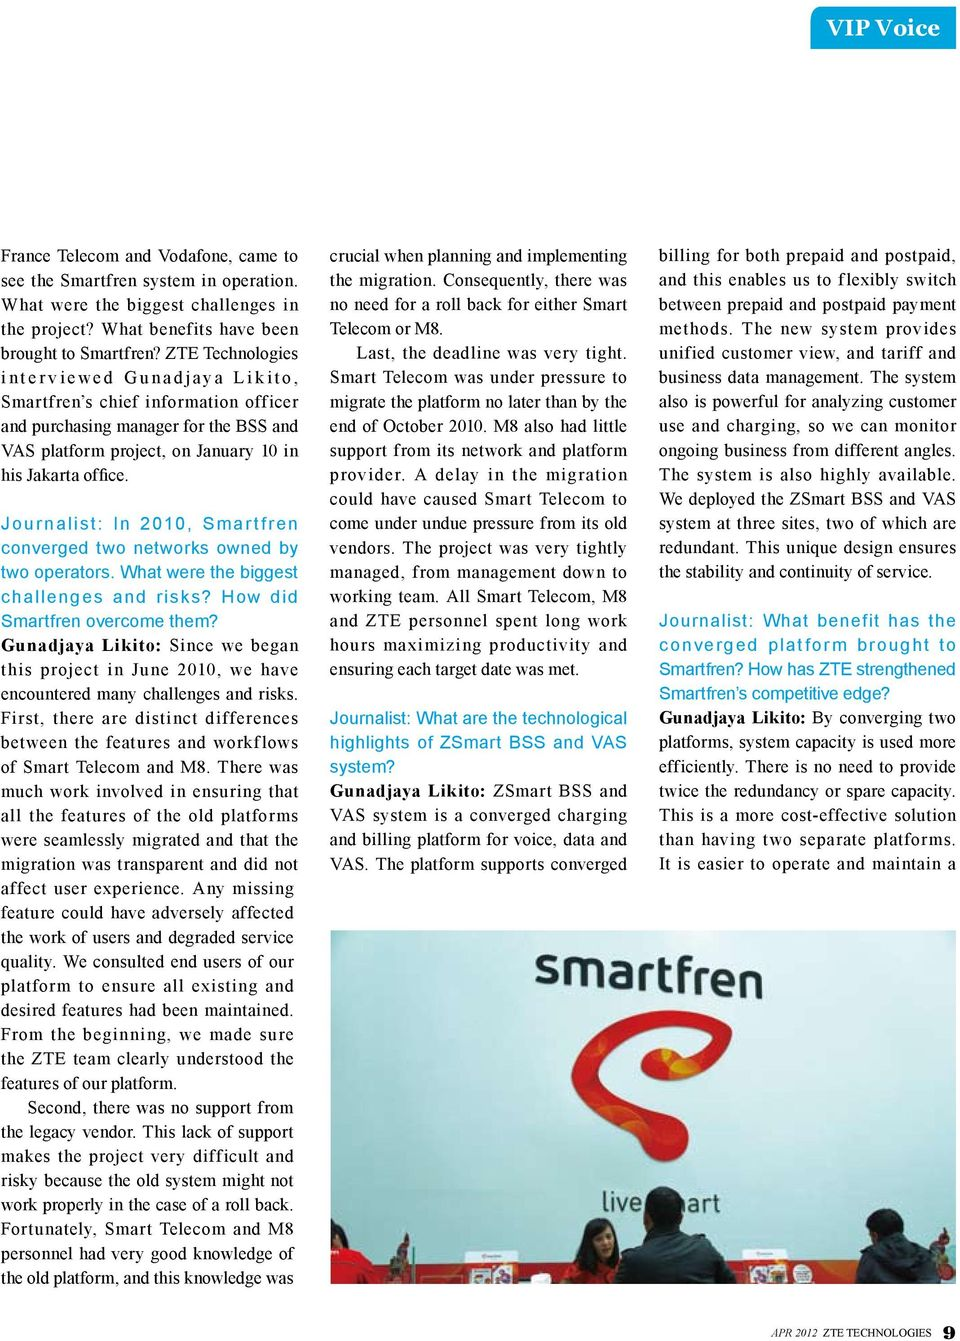 office. Jour nalist: In 2010, Smar t fren converged two networks owned by two operators. What were the biggest challenges and risks? How did Smartfren overcome them?